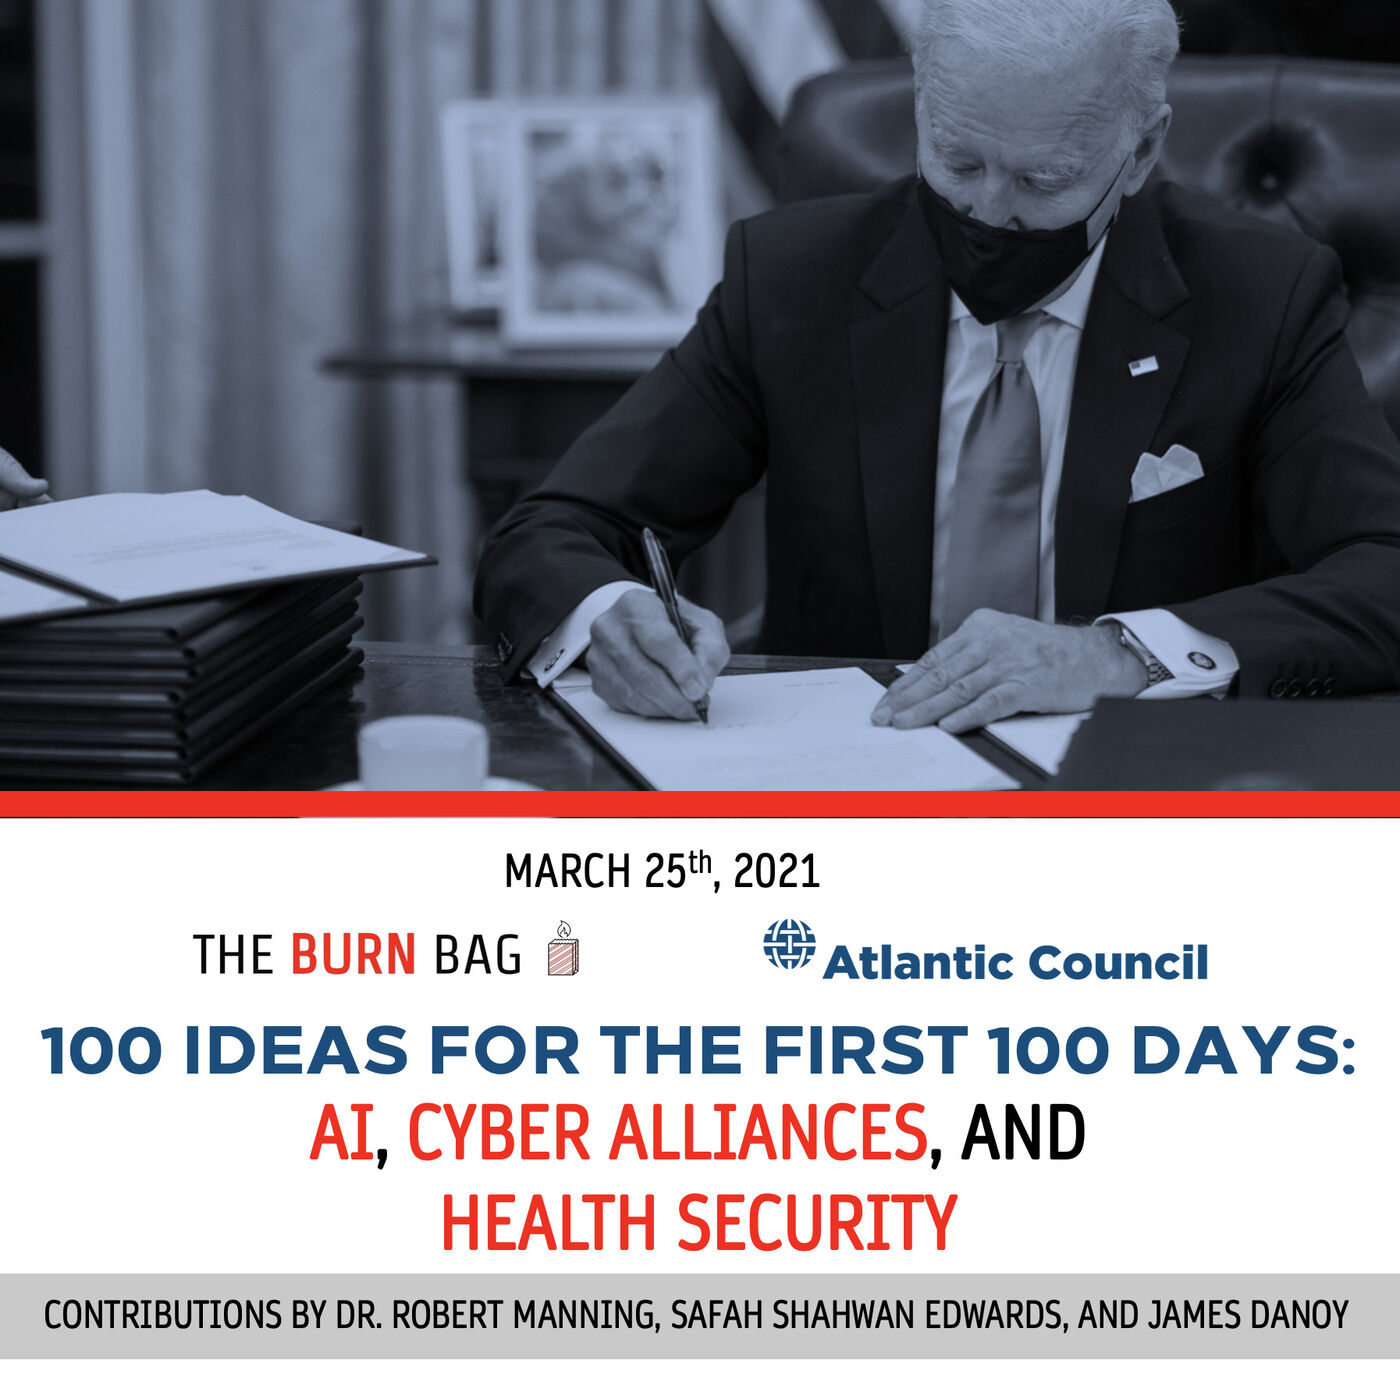 100 Ideas for the First 100 Days: AI, Cyber Alliances, and Health Security